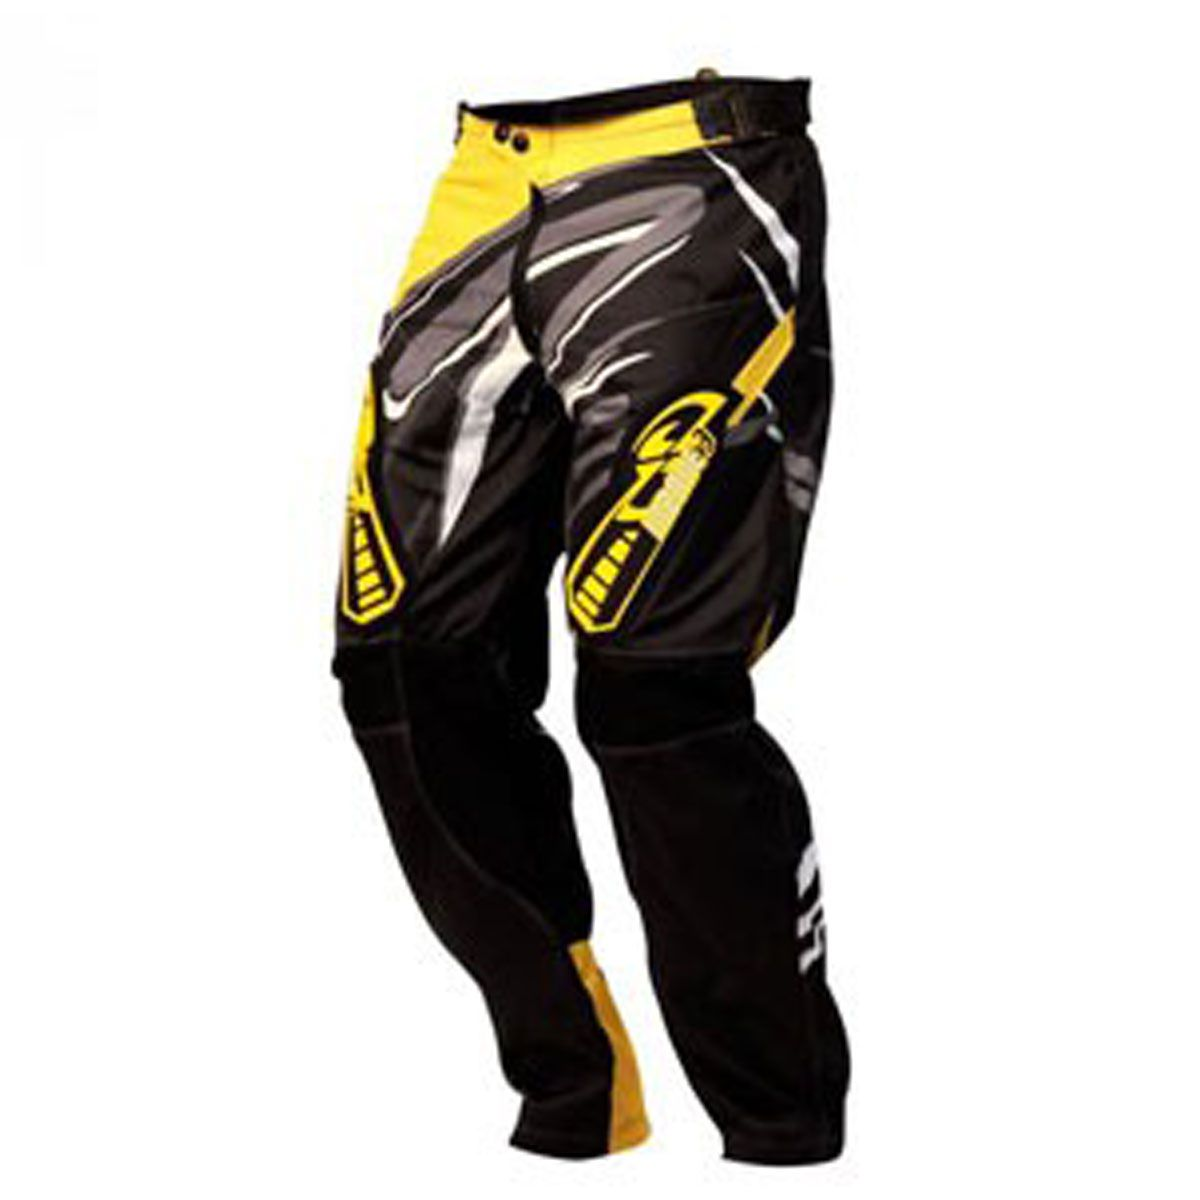 Calça Protork Cal-92PT Insane 3 Black / Yellow